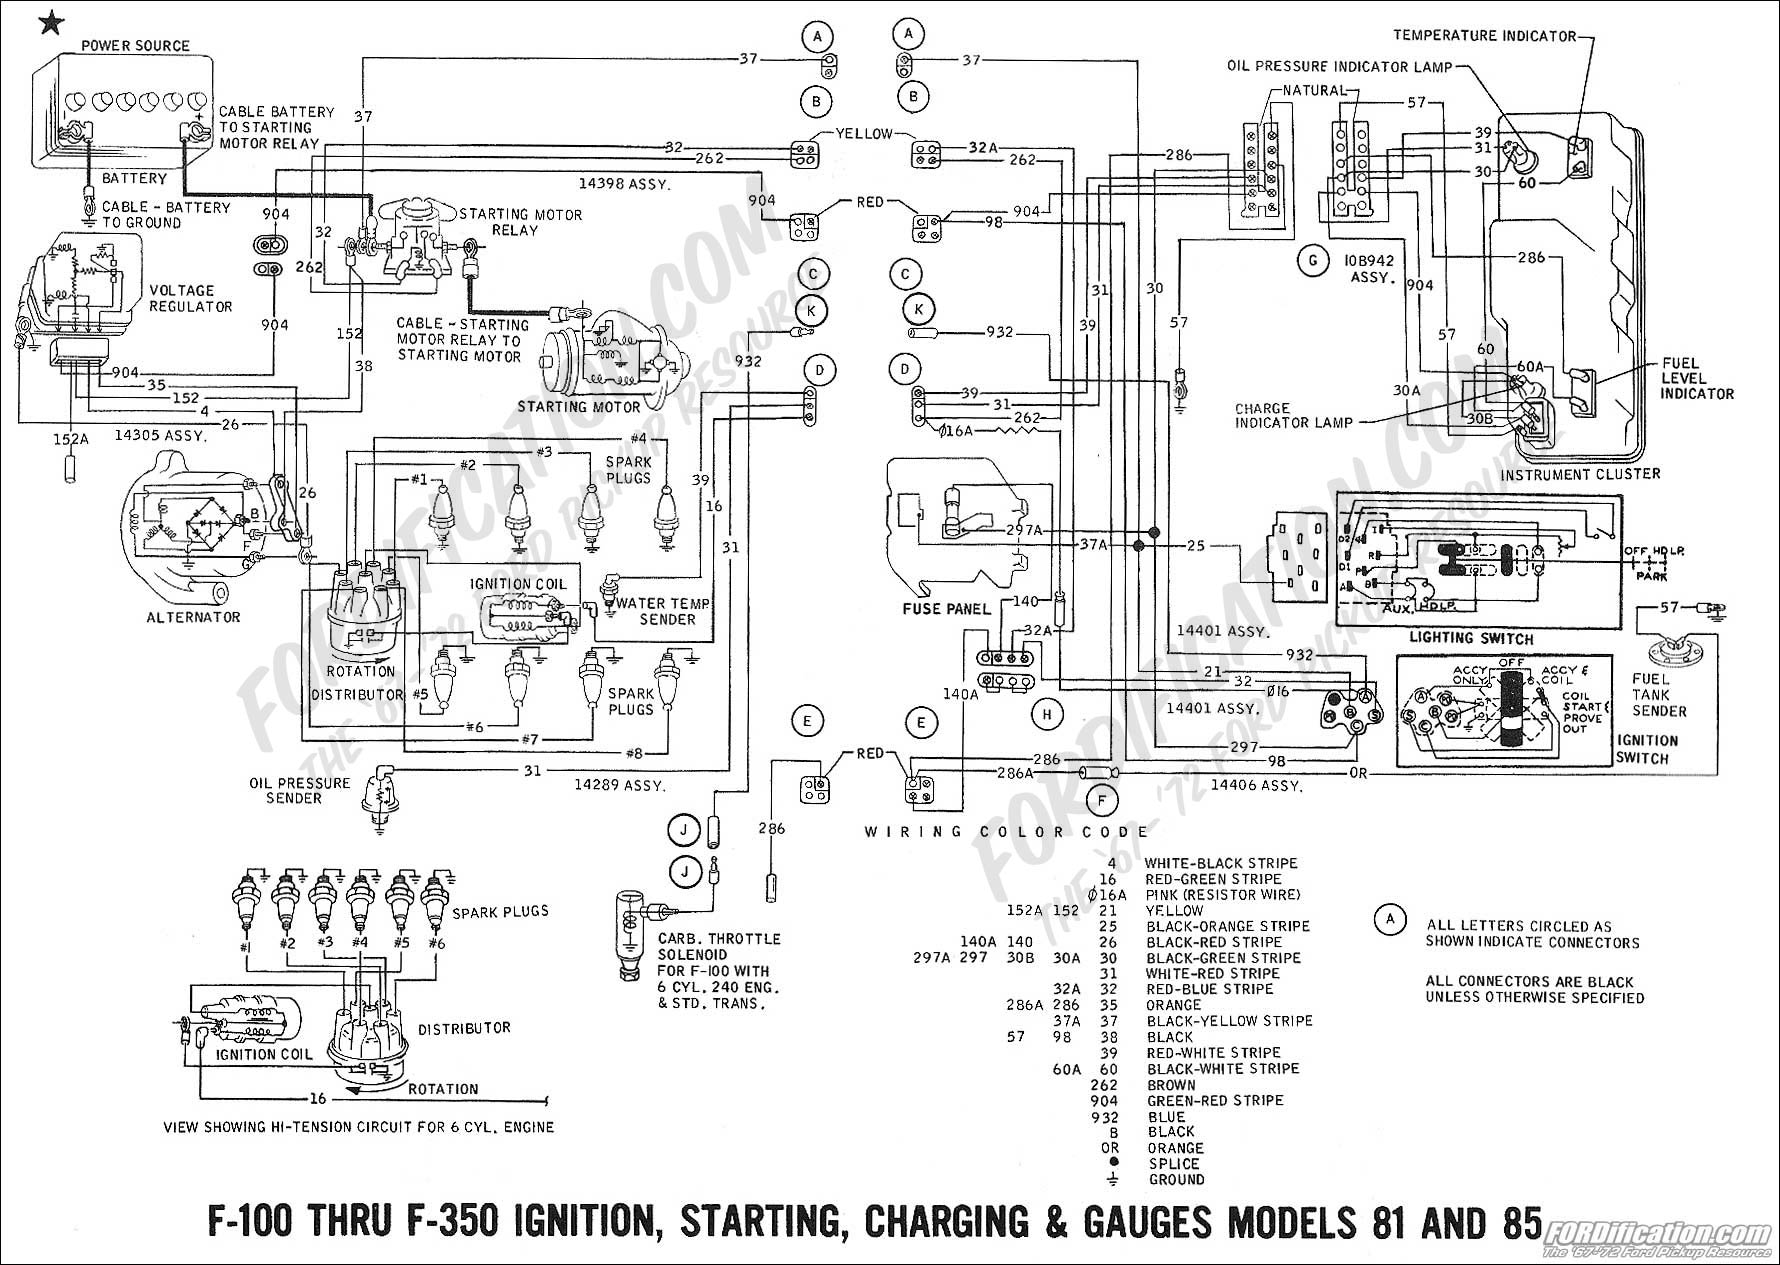 2014 ford f250 wiring diagram circuit diagram schematic gmc truck wiring  diagrams 2014 ford f 250